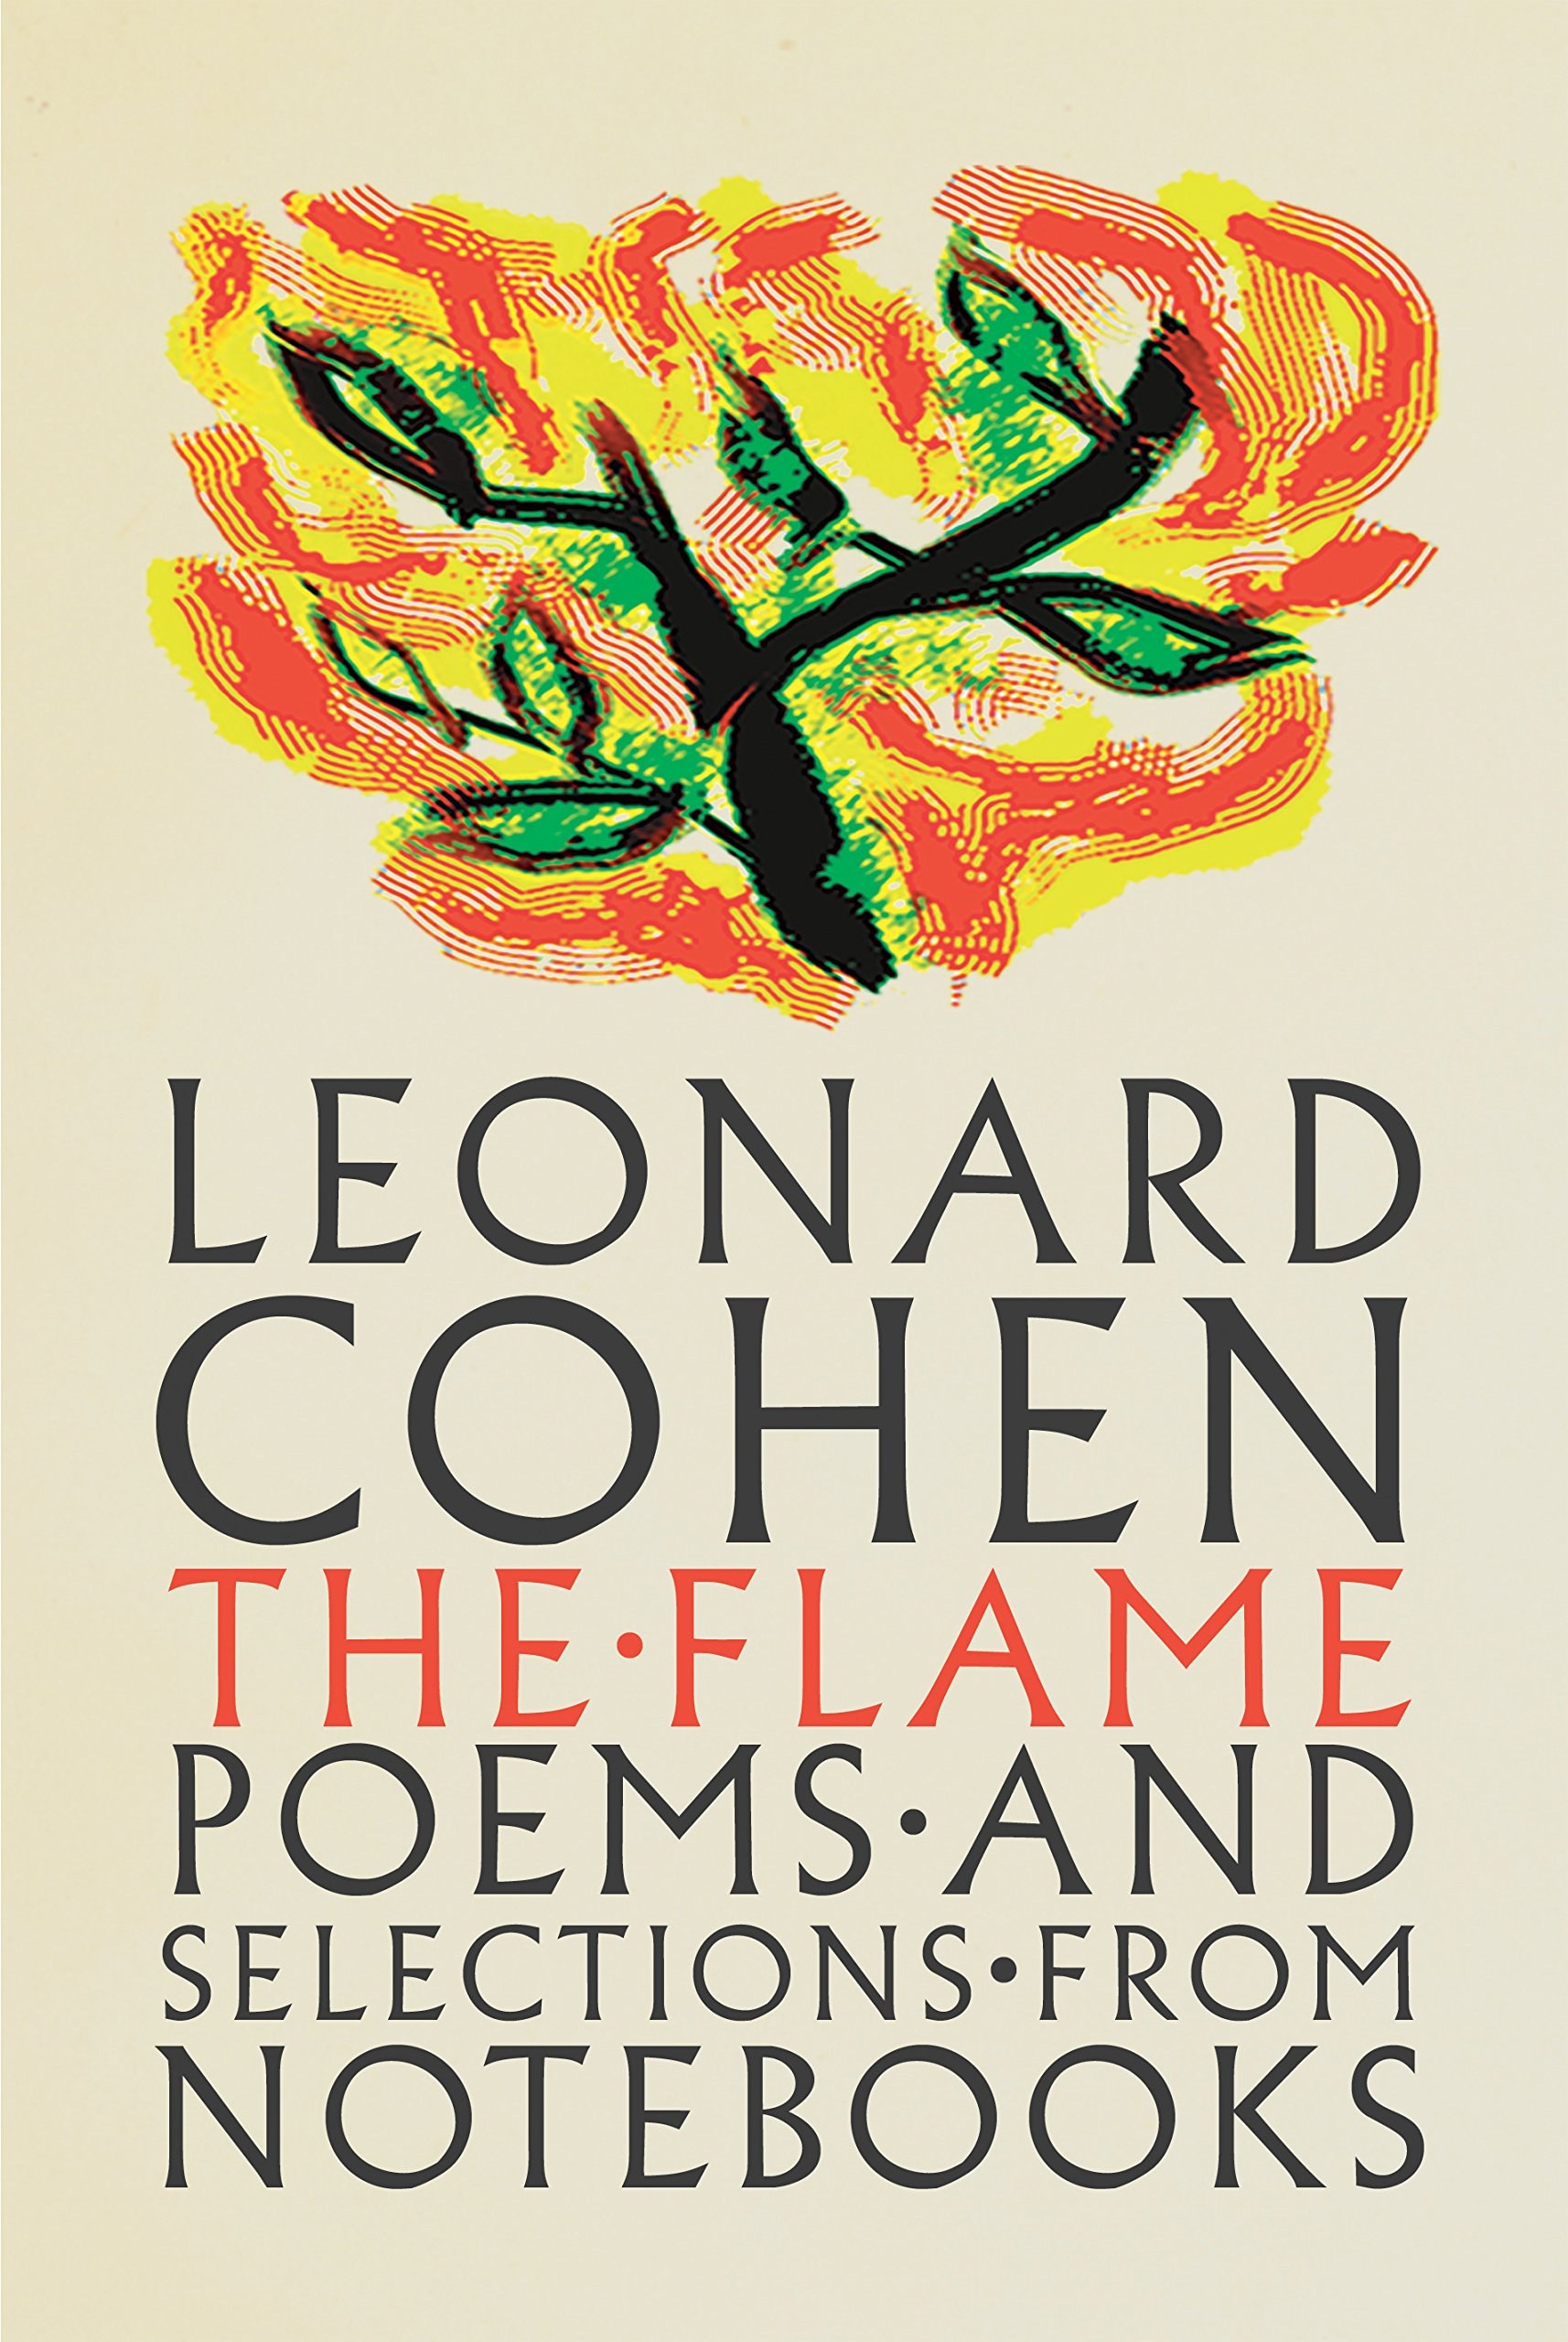 Image result for leonard cohen the flame